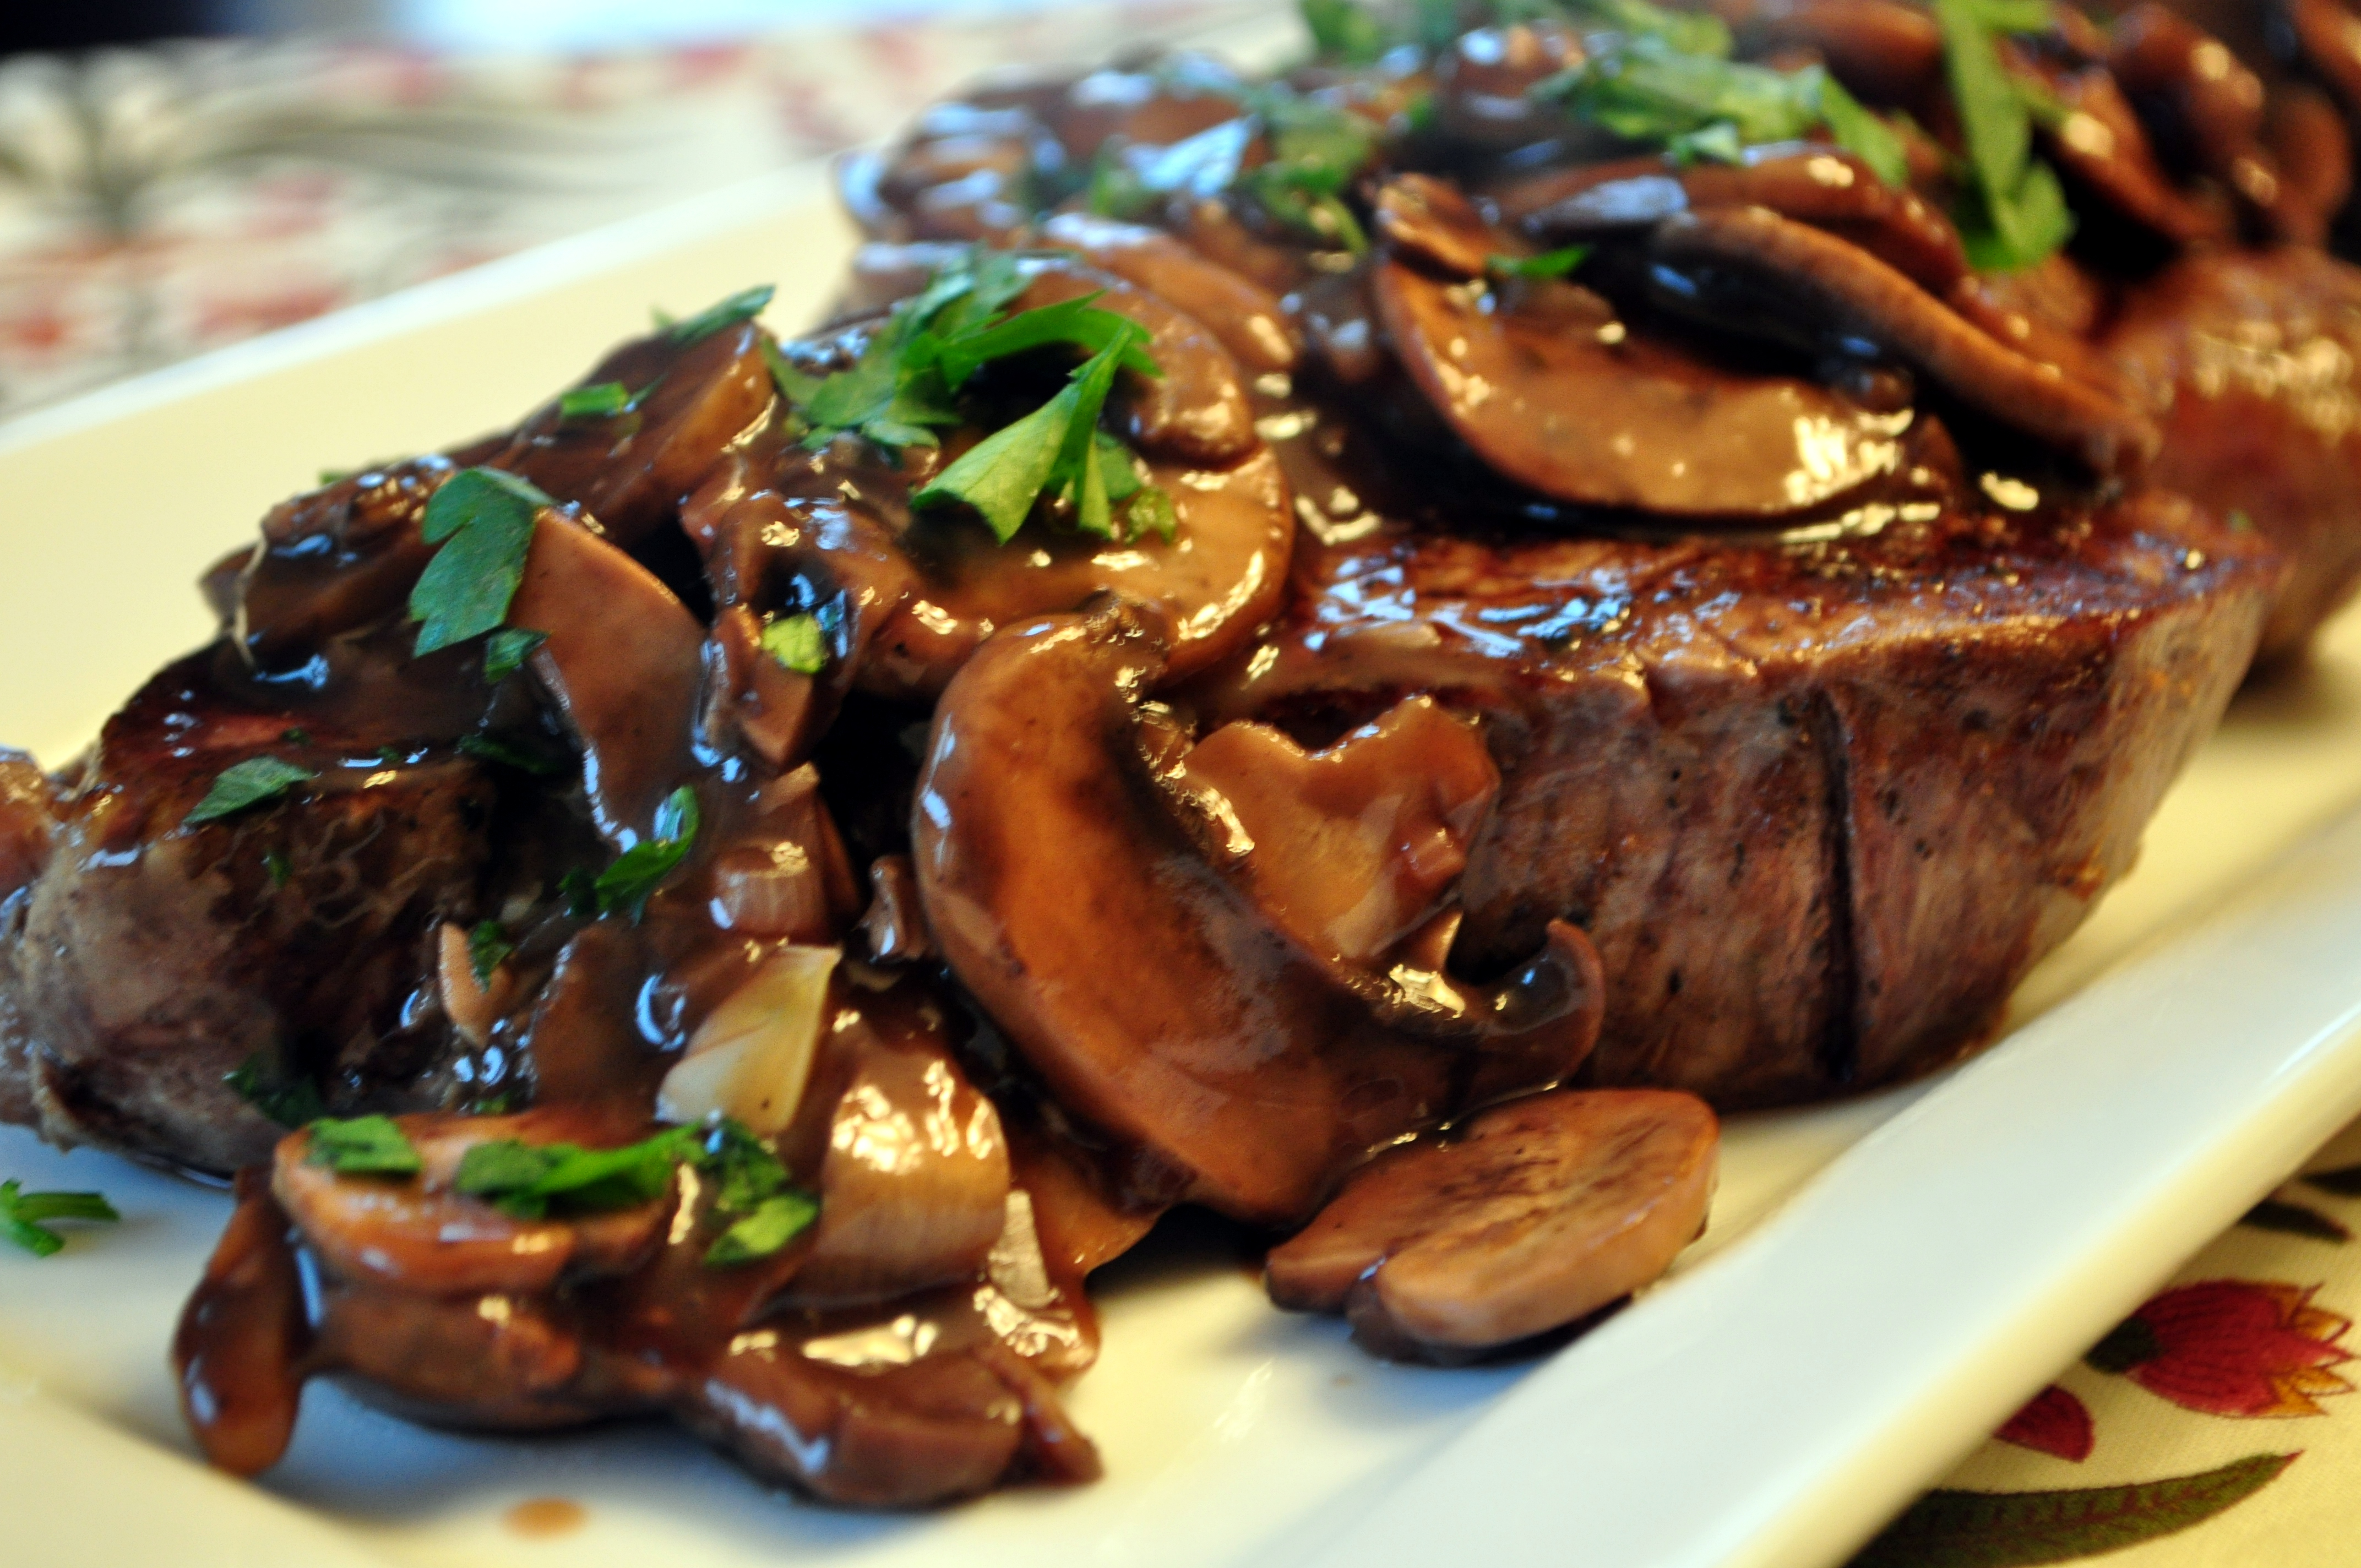 Beaf Tenderloin mushrooms